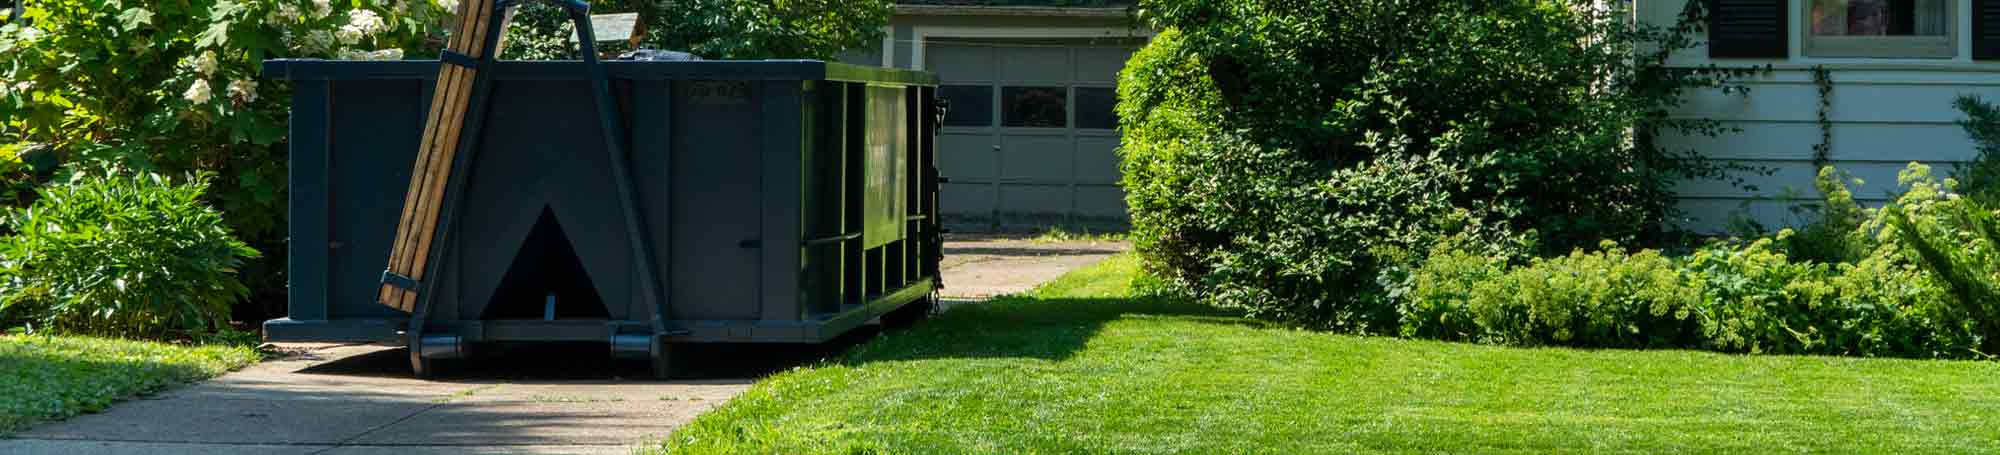 Blue Roll Off Dumpster in Driveway of White House With Green Lawn.